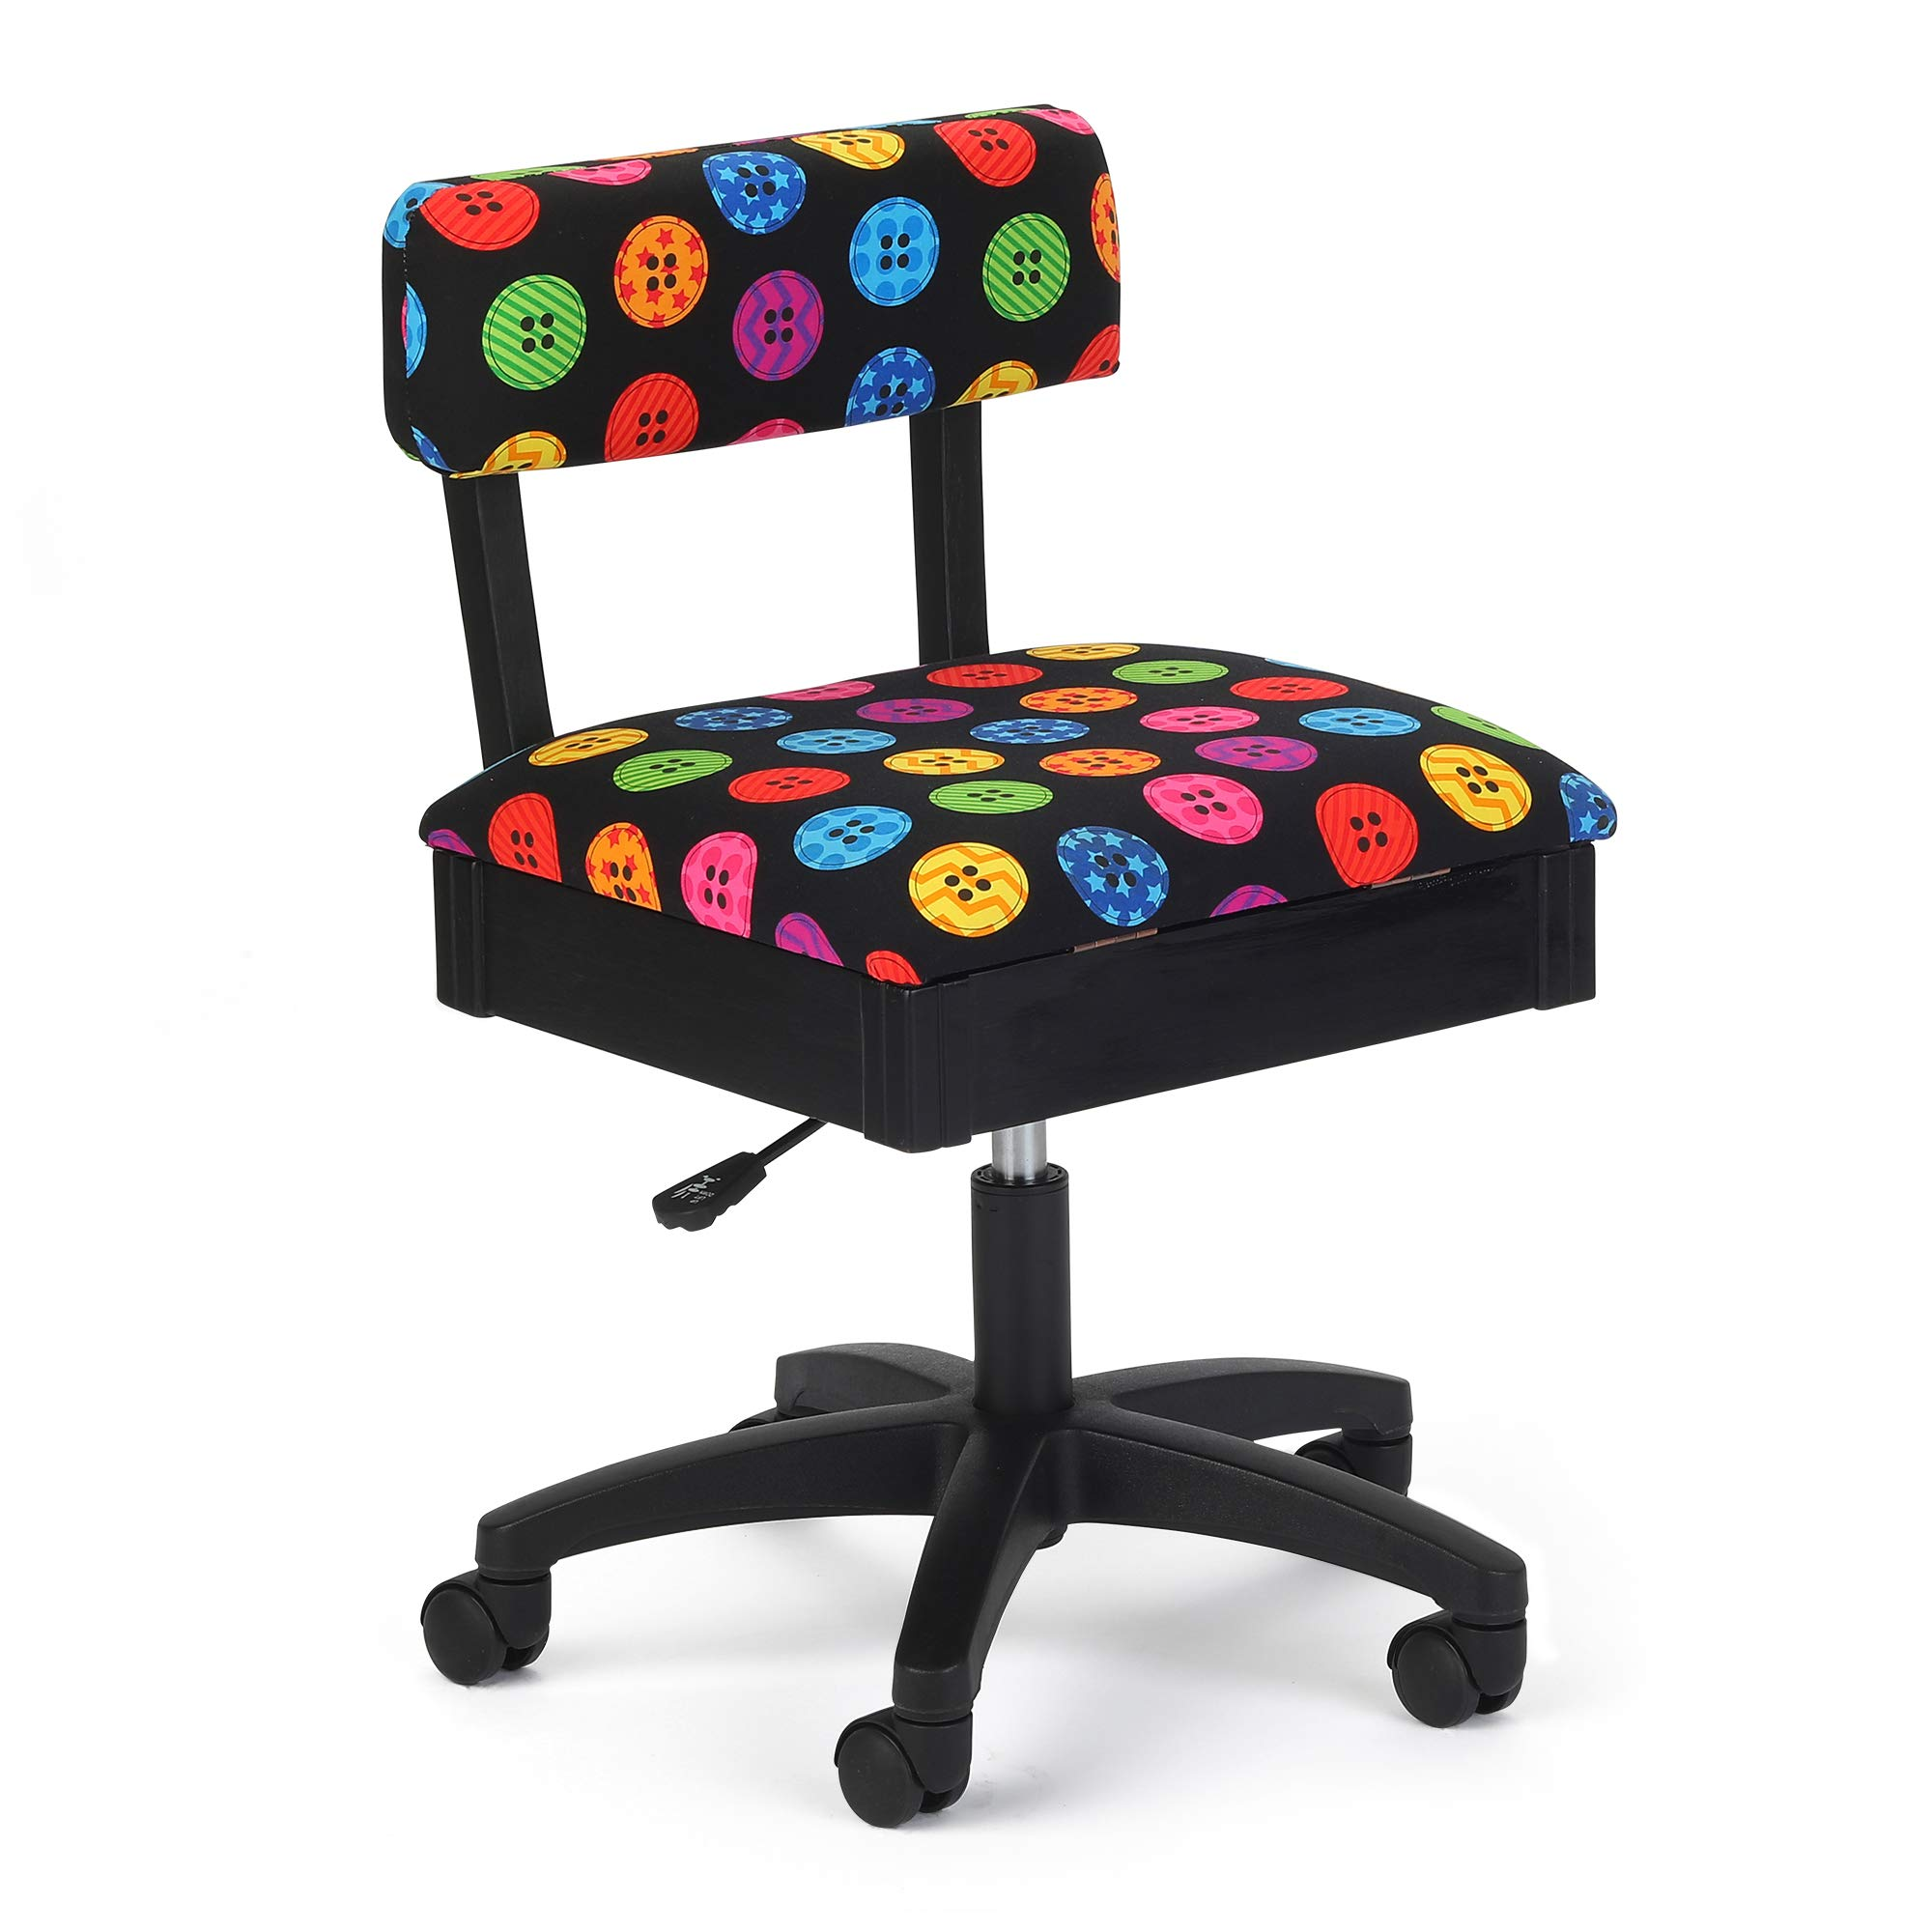 Arrow Hydraulic Sewing Chair with Riley Black Button Motif Fabric by Arrow Sewing Cabinets